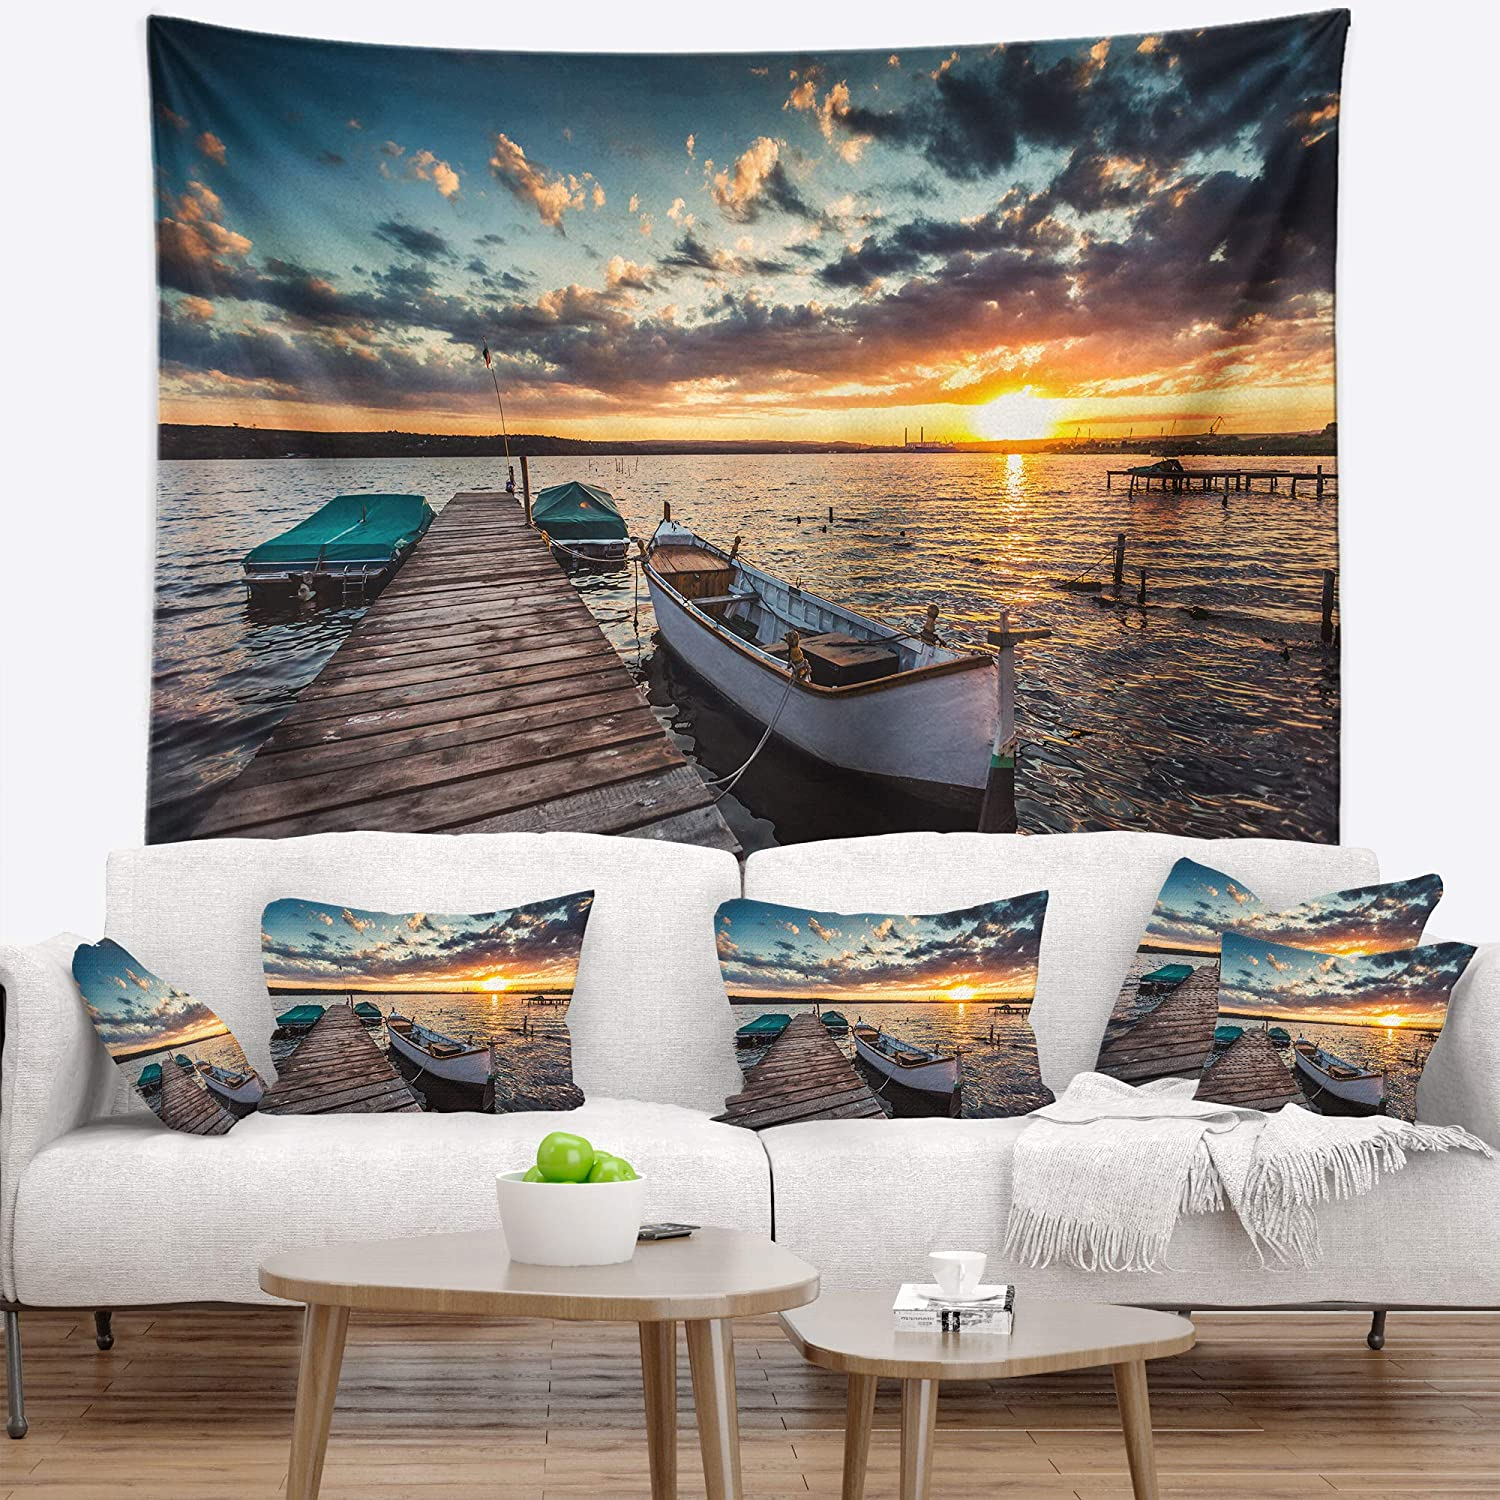 Designart TAP14688-80-68  Boats and Jetty Under Dramatic Sky Modern Blanket D/écor Art for Home and Office Wall Tapestry x Large x 68 in 80 in Created On Lightweight Polyester Fabric